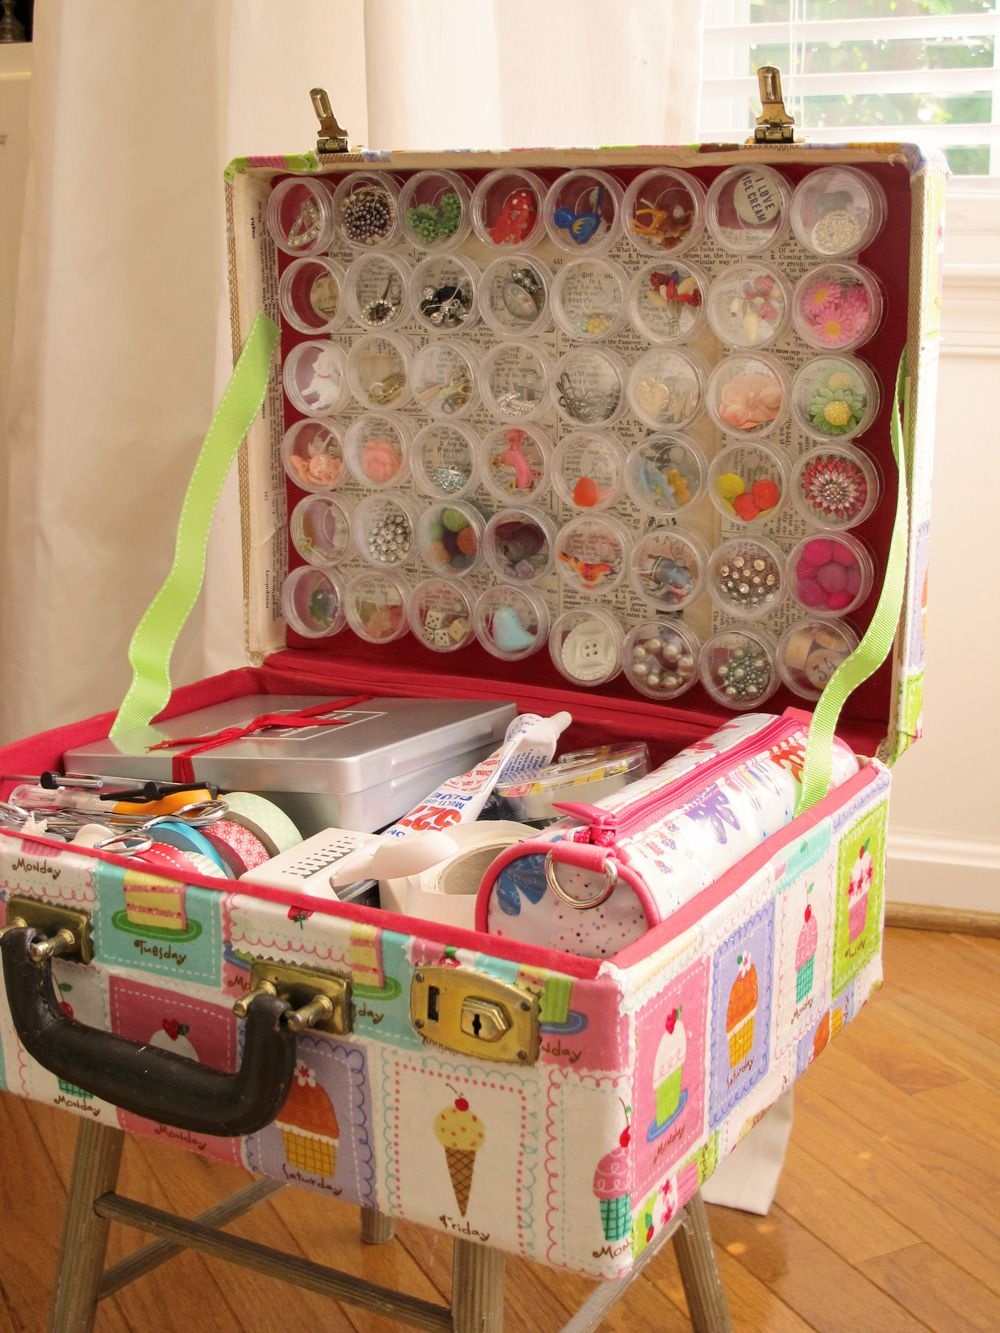 Scrapbook ideas recycled - Creative Ways To Recycle And Reuse Vintage Suitcases